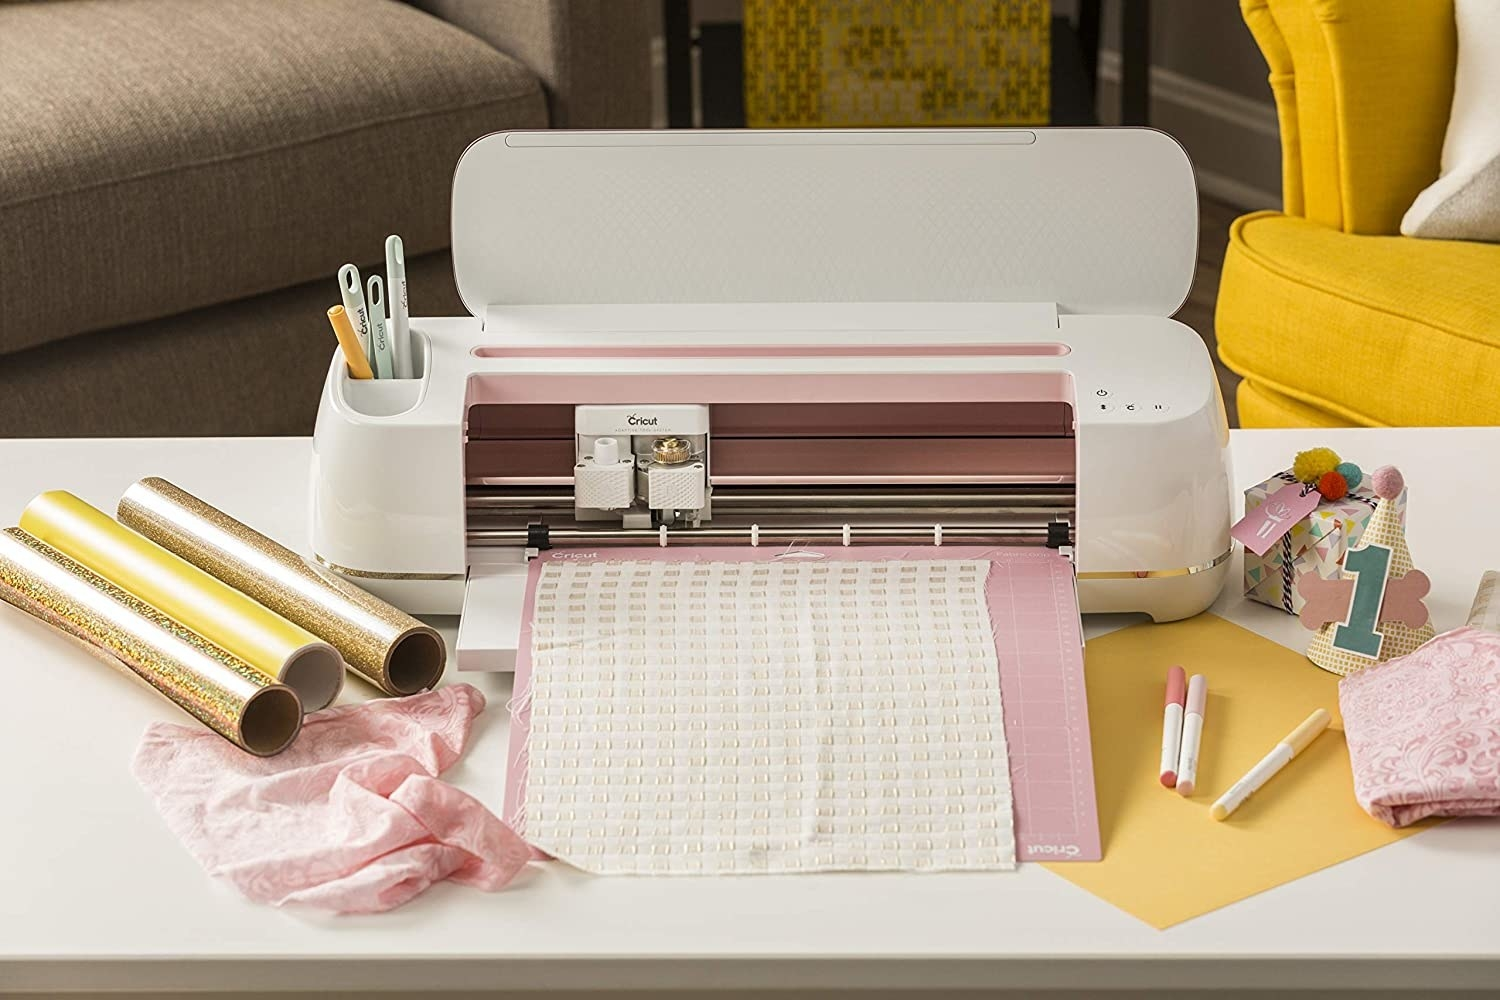 a cricut maker machine in white and pink